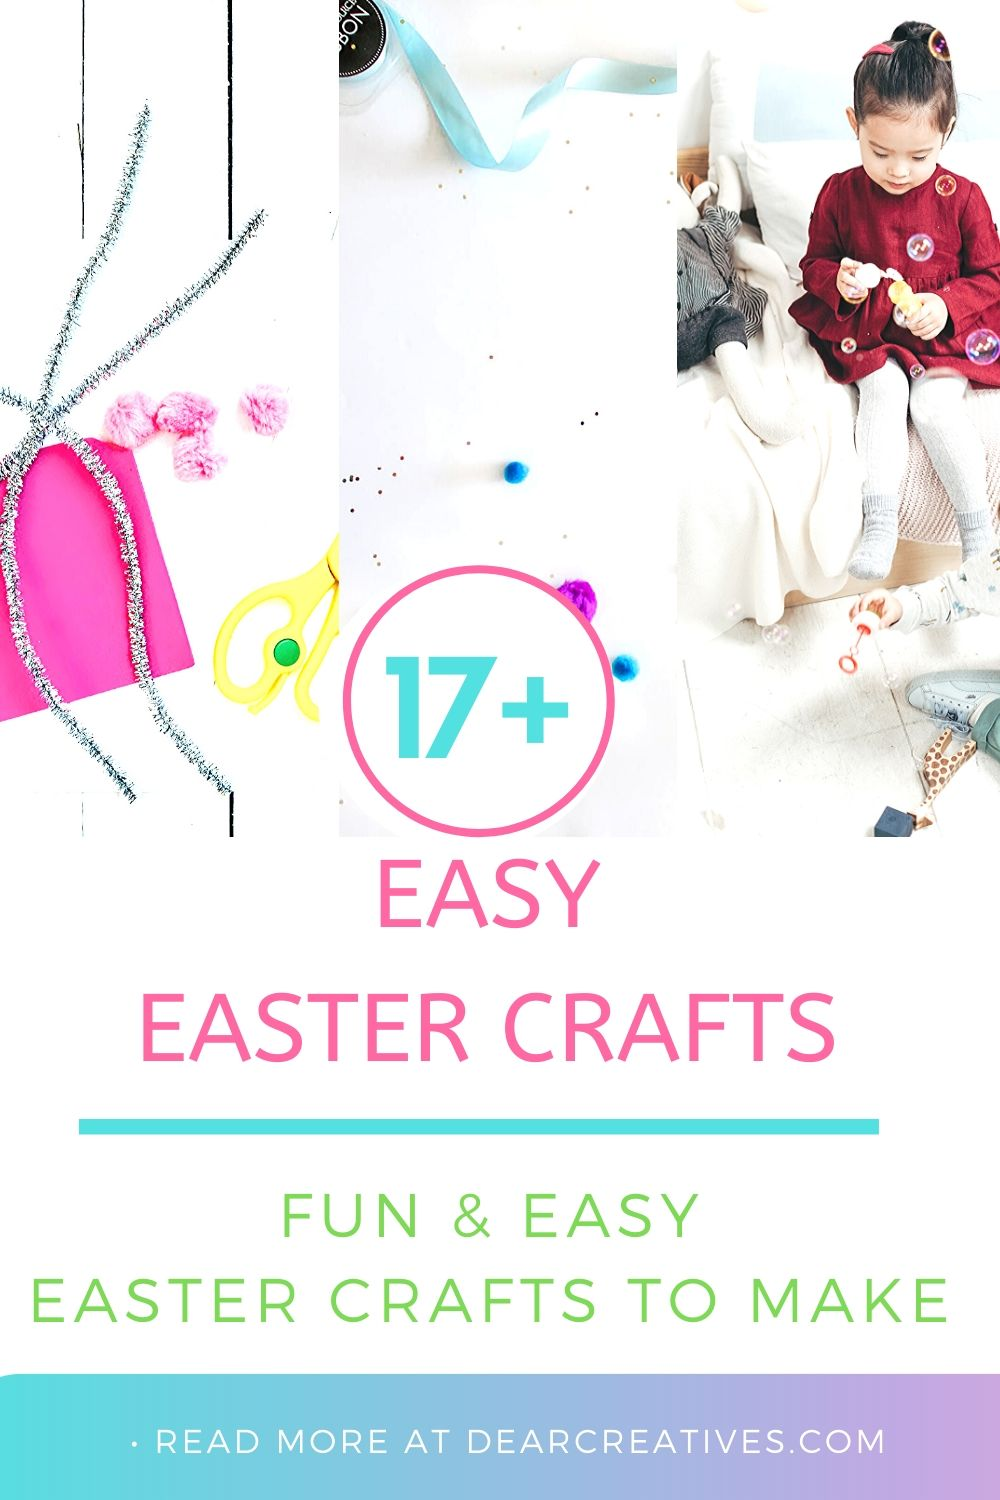 17+ Easy Easter Crafts That Are Fun To Make!